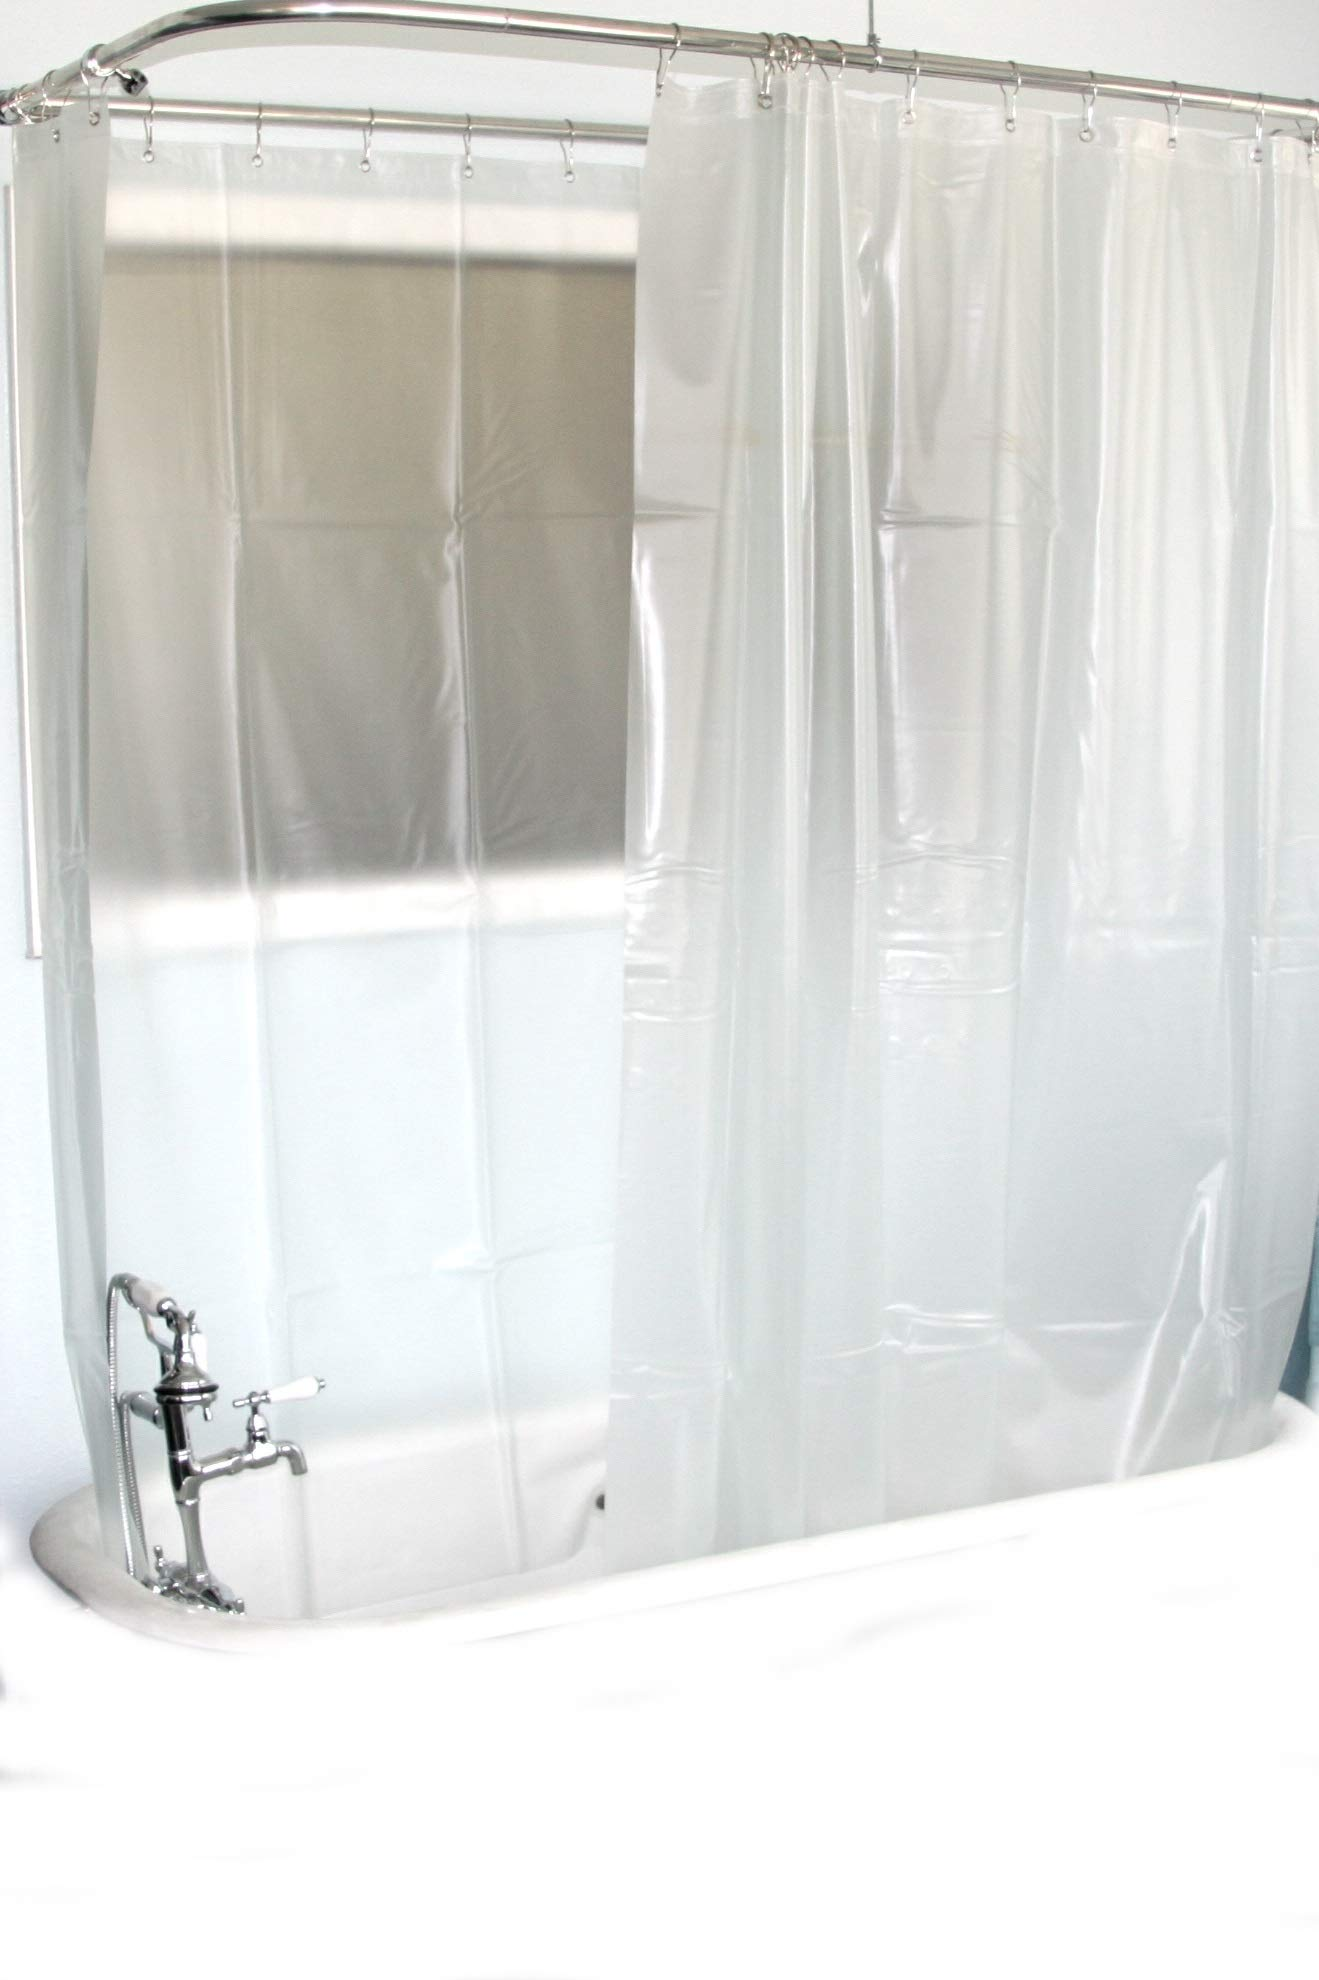 D&L Extra Wide Vinyl Shower Curtain for a Clawfoot Tub/Opaque with Magnets 180'' X 70''